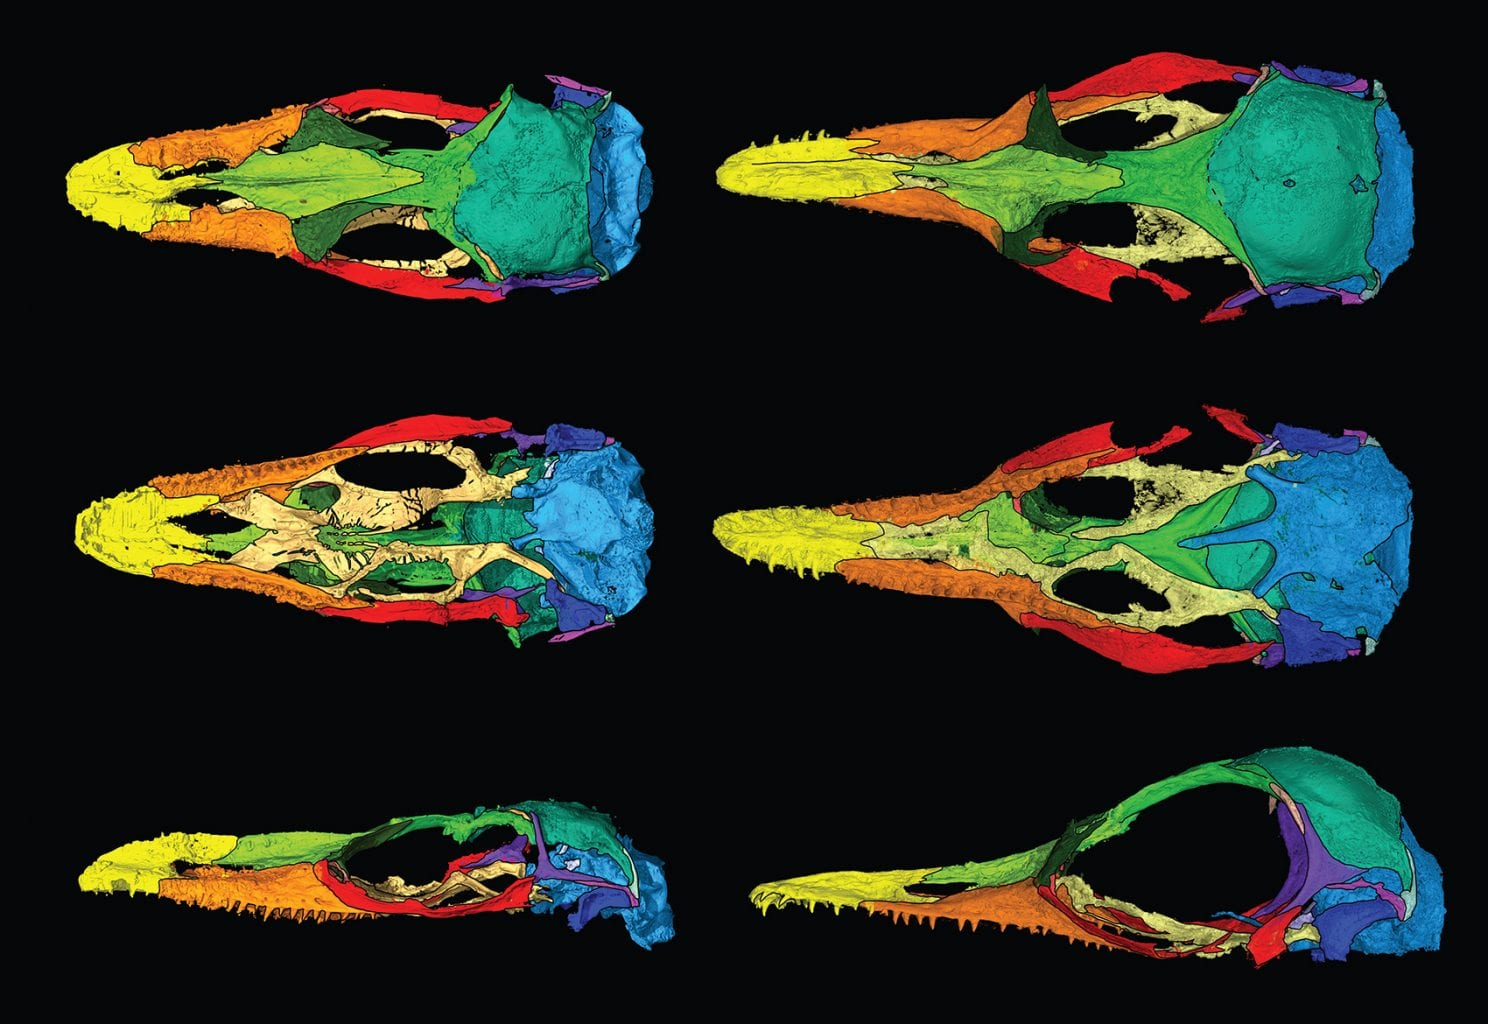 Digital isolation of each bone of both new species of lizard - O. naga on the left and O. khaungraae on the right. Credit: EDWARD STANLEY OF THE FLORIDA MUSEUM, ADAPTED FROM CURRENT BIOLOGY. CT SCANS FUNDED BY THE PERETTI MUSEUM FOUNDATION